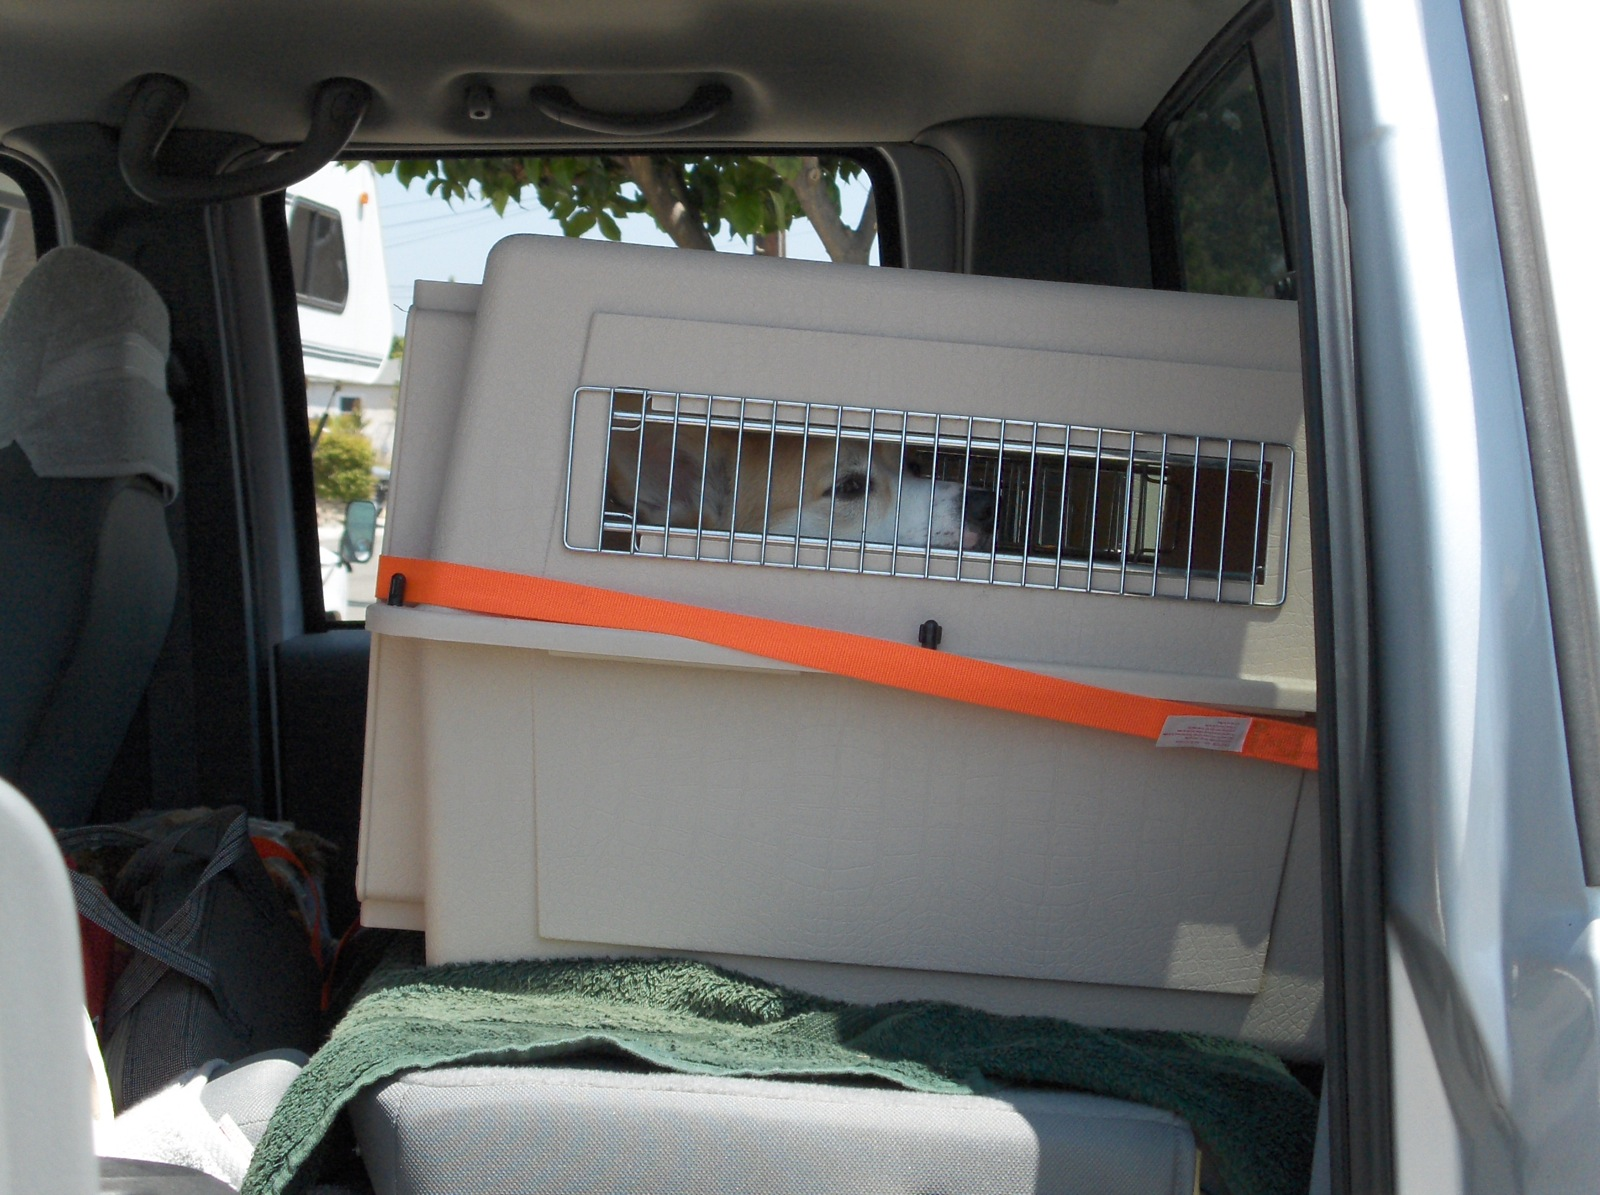 Click image for larger version  Name:HPIM2559 Dog crates in F-250.jpg Views:64 Size:442.5 KB ID:198287